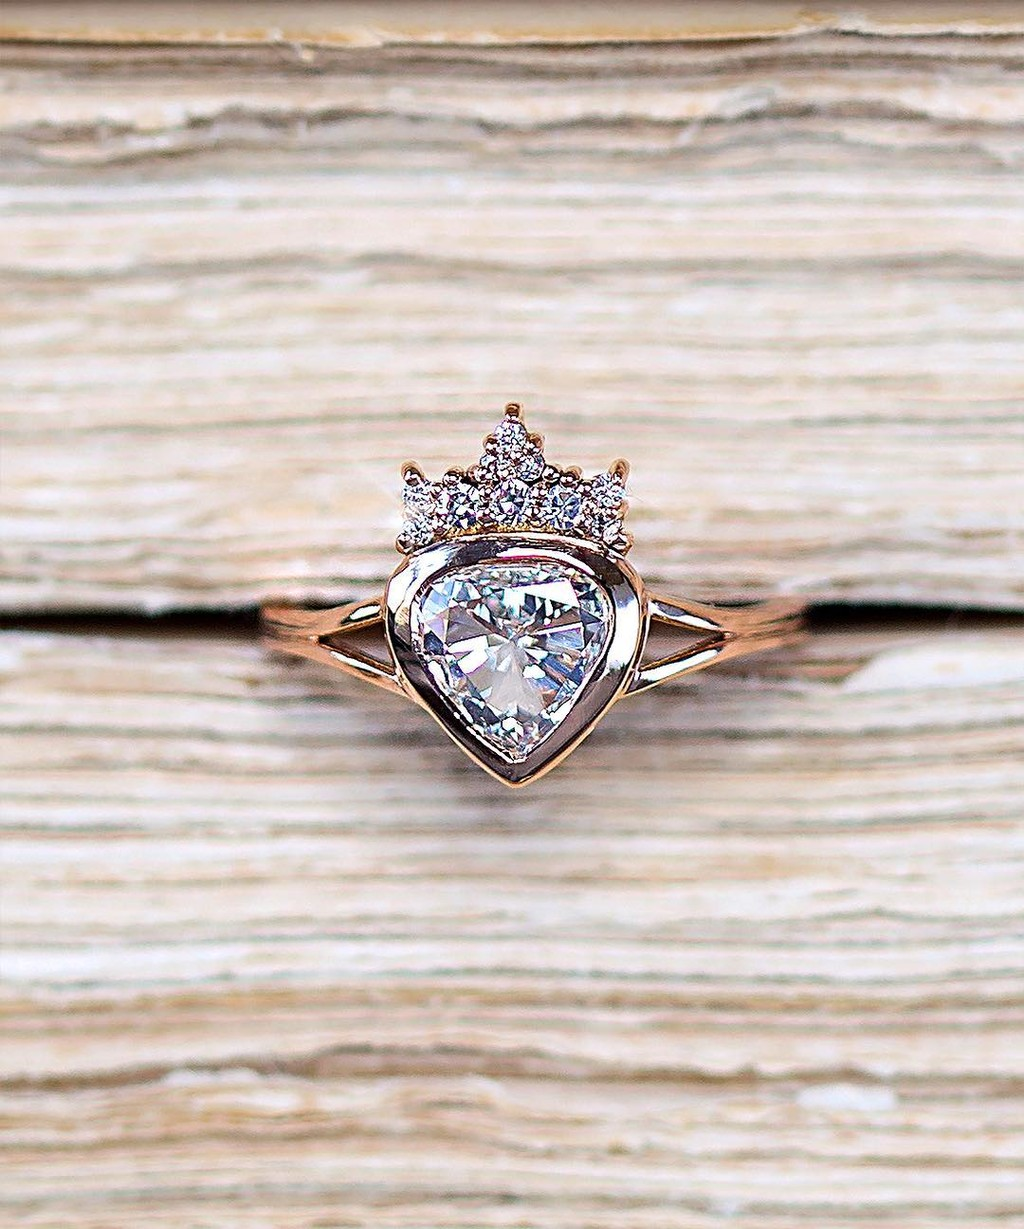 👑💖👑 Regal, sweet, and dainty proportions define our Ettie ring. A contemporary distillation of the crowned heart or sacred